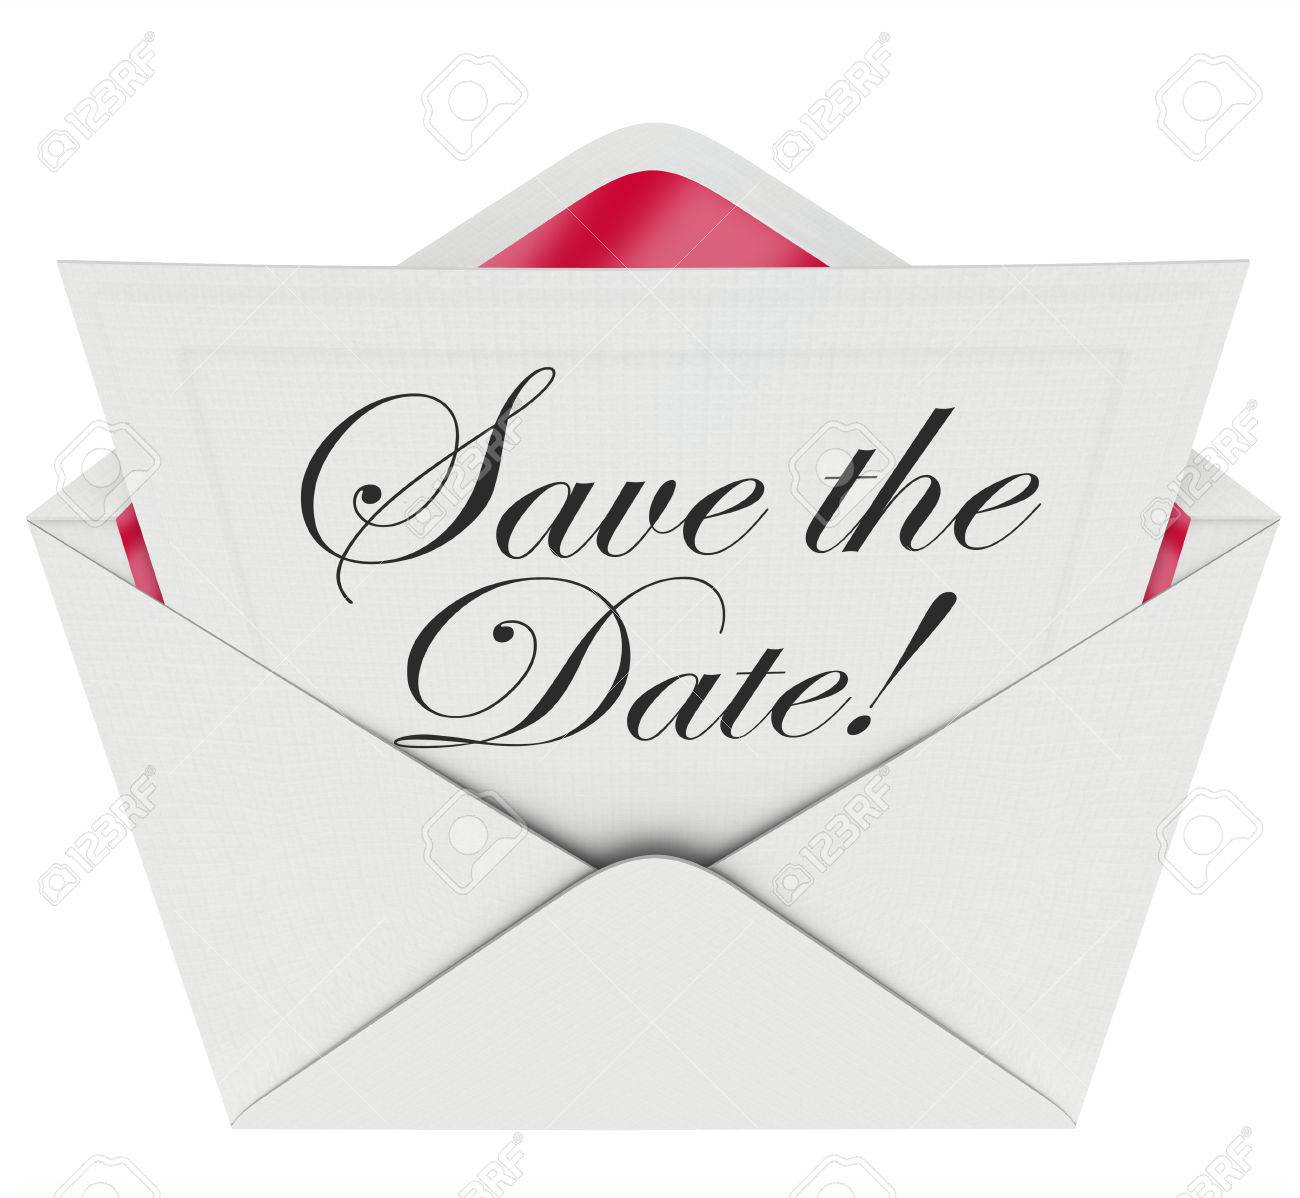 save the date words on an invitation or message note in an open envelope asking you